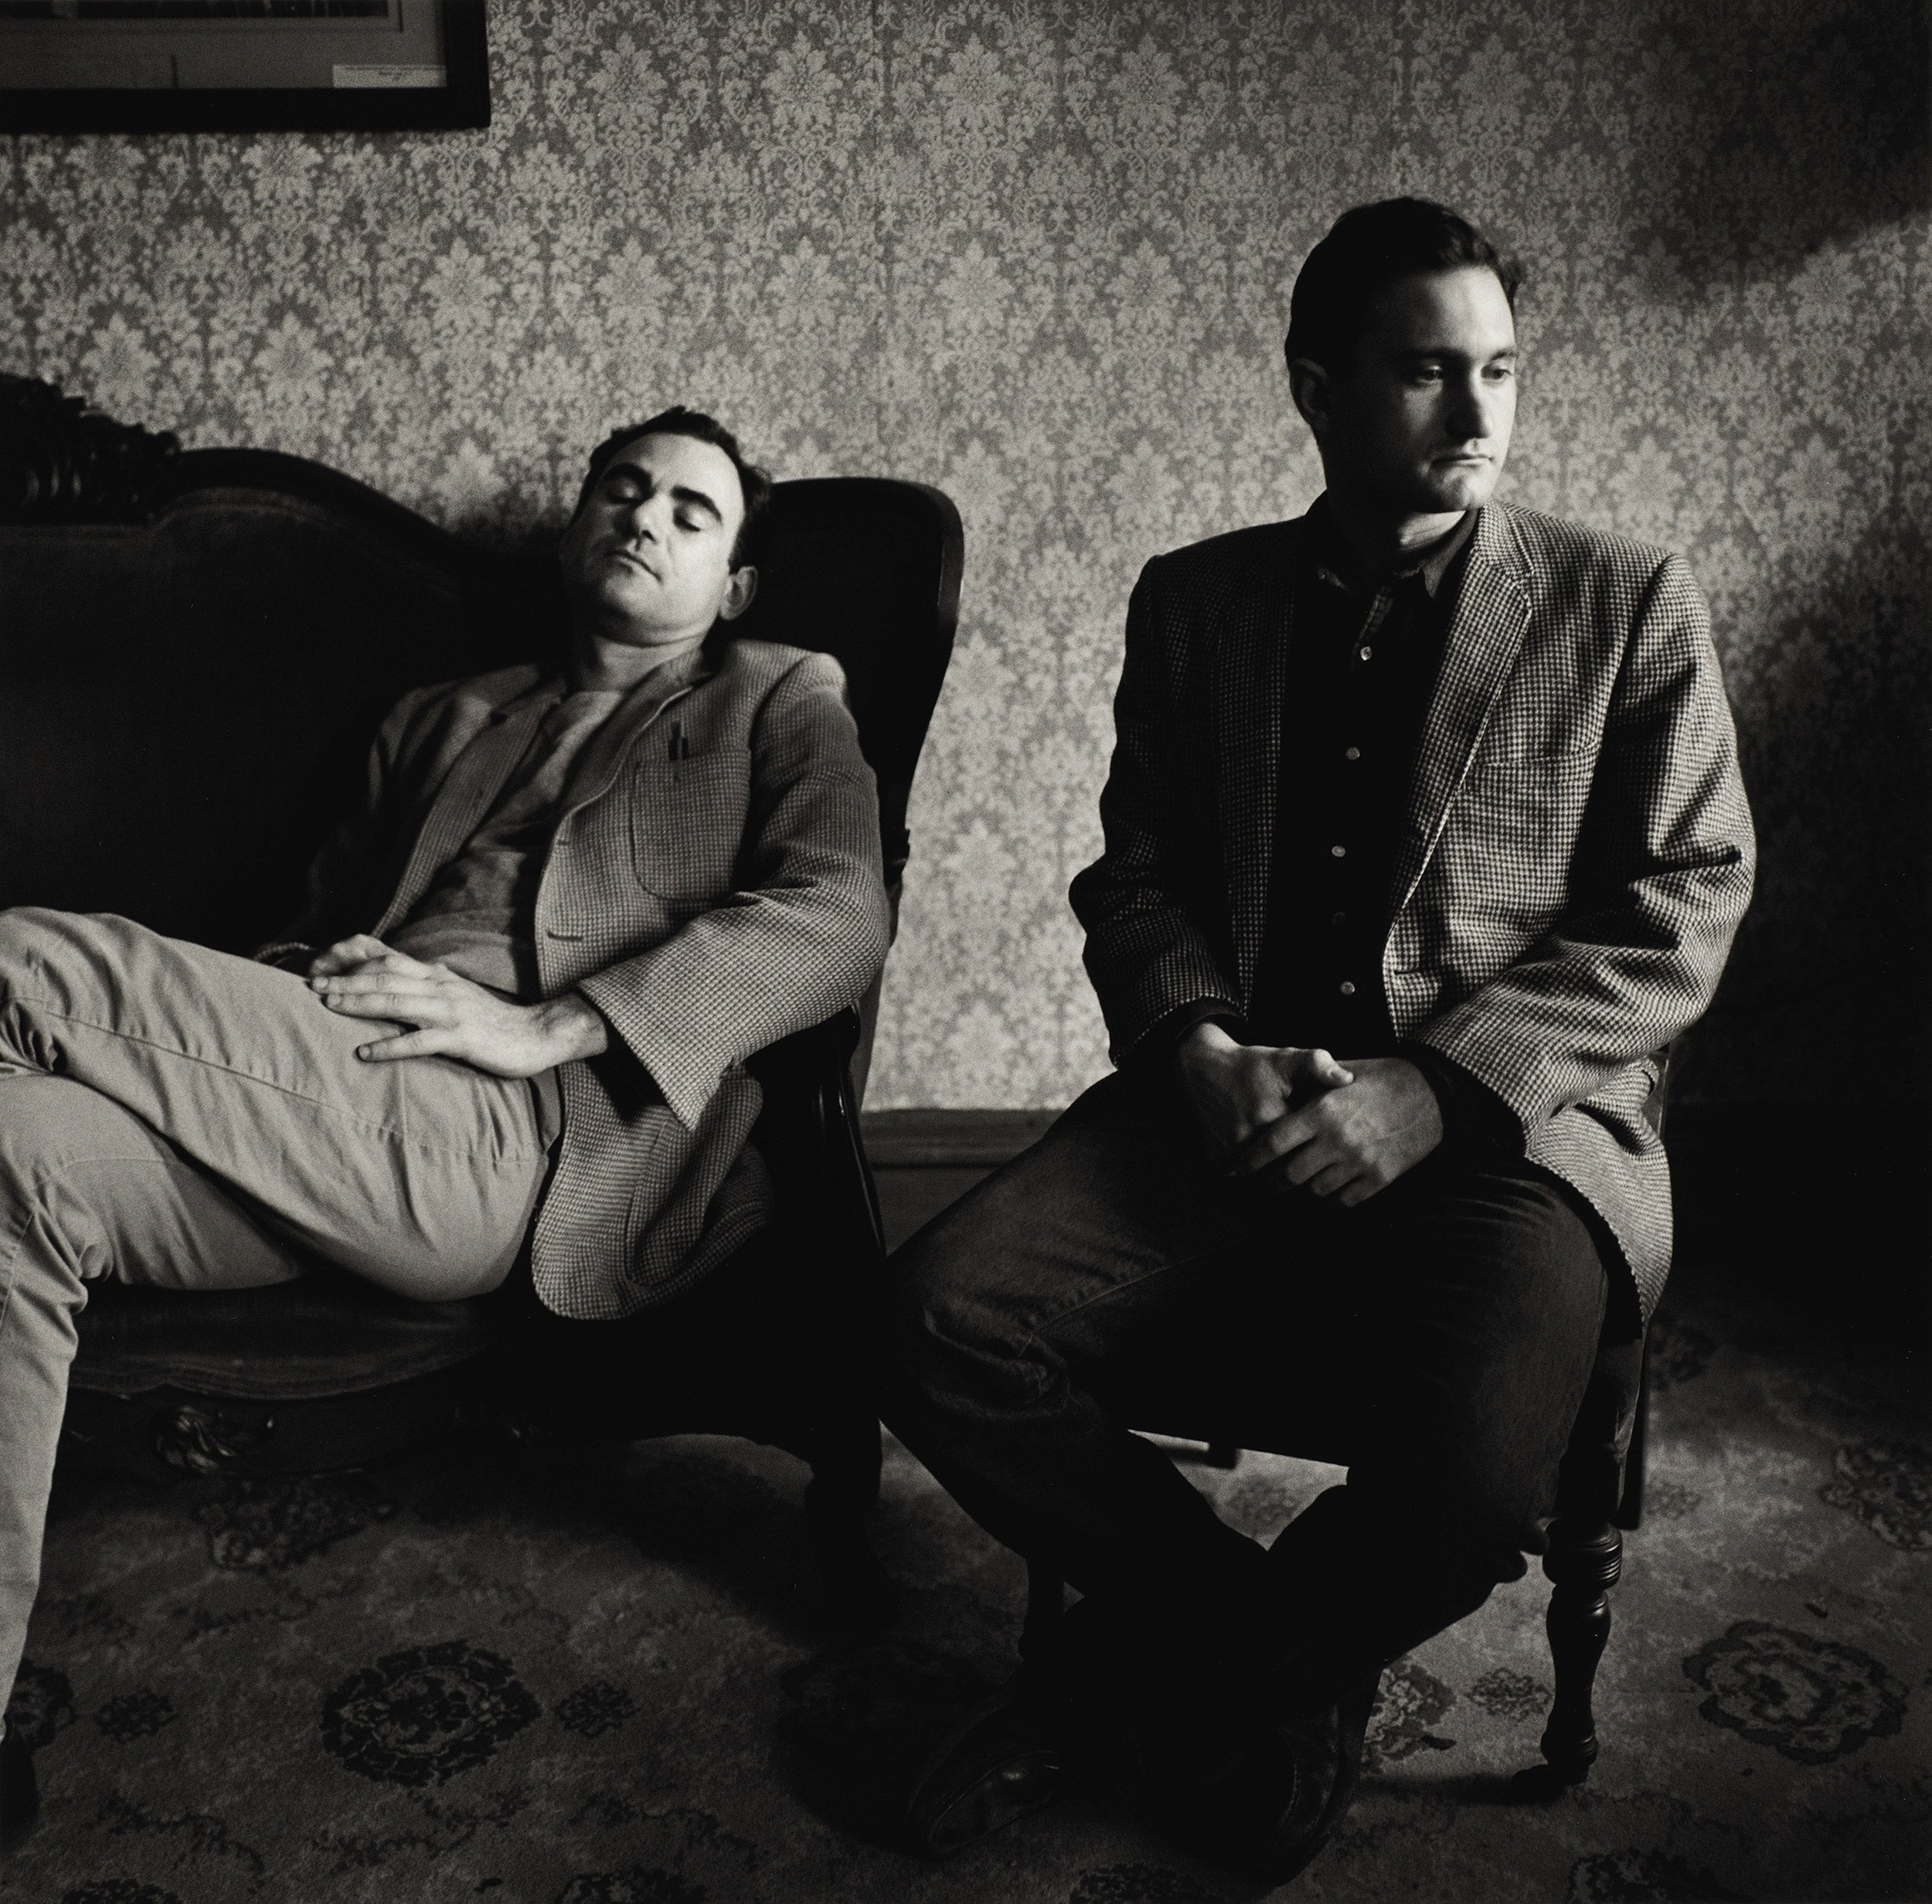 Peter Hujar, John Erdman and Gary Schneider at Mohonk Mountain House, 1984.